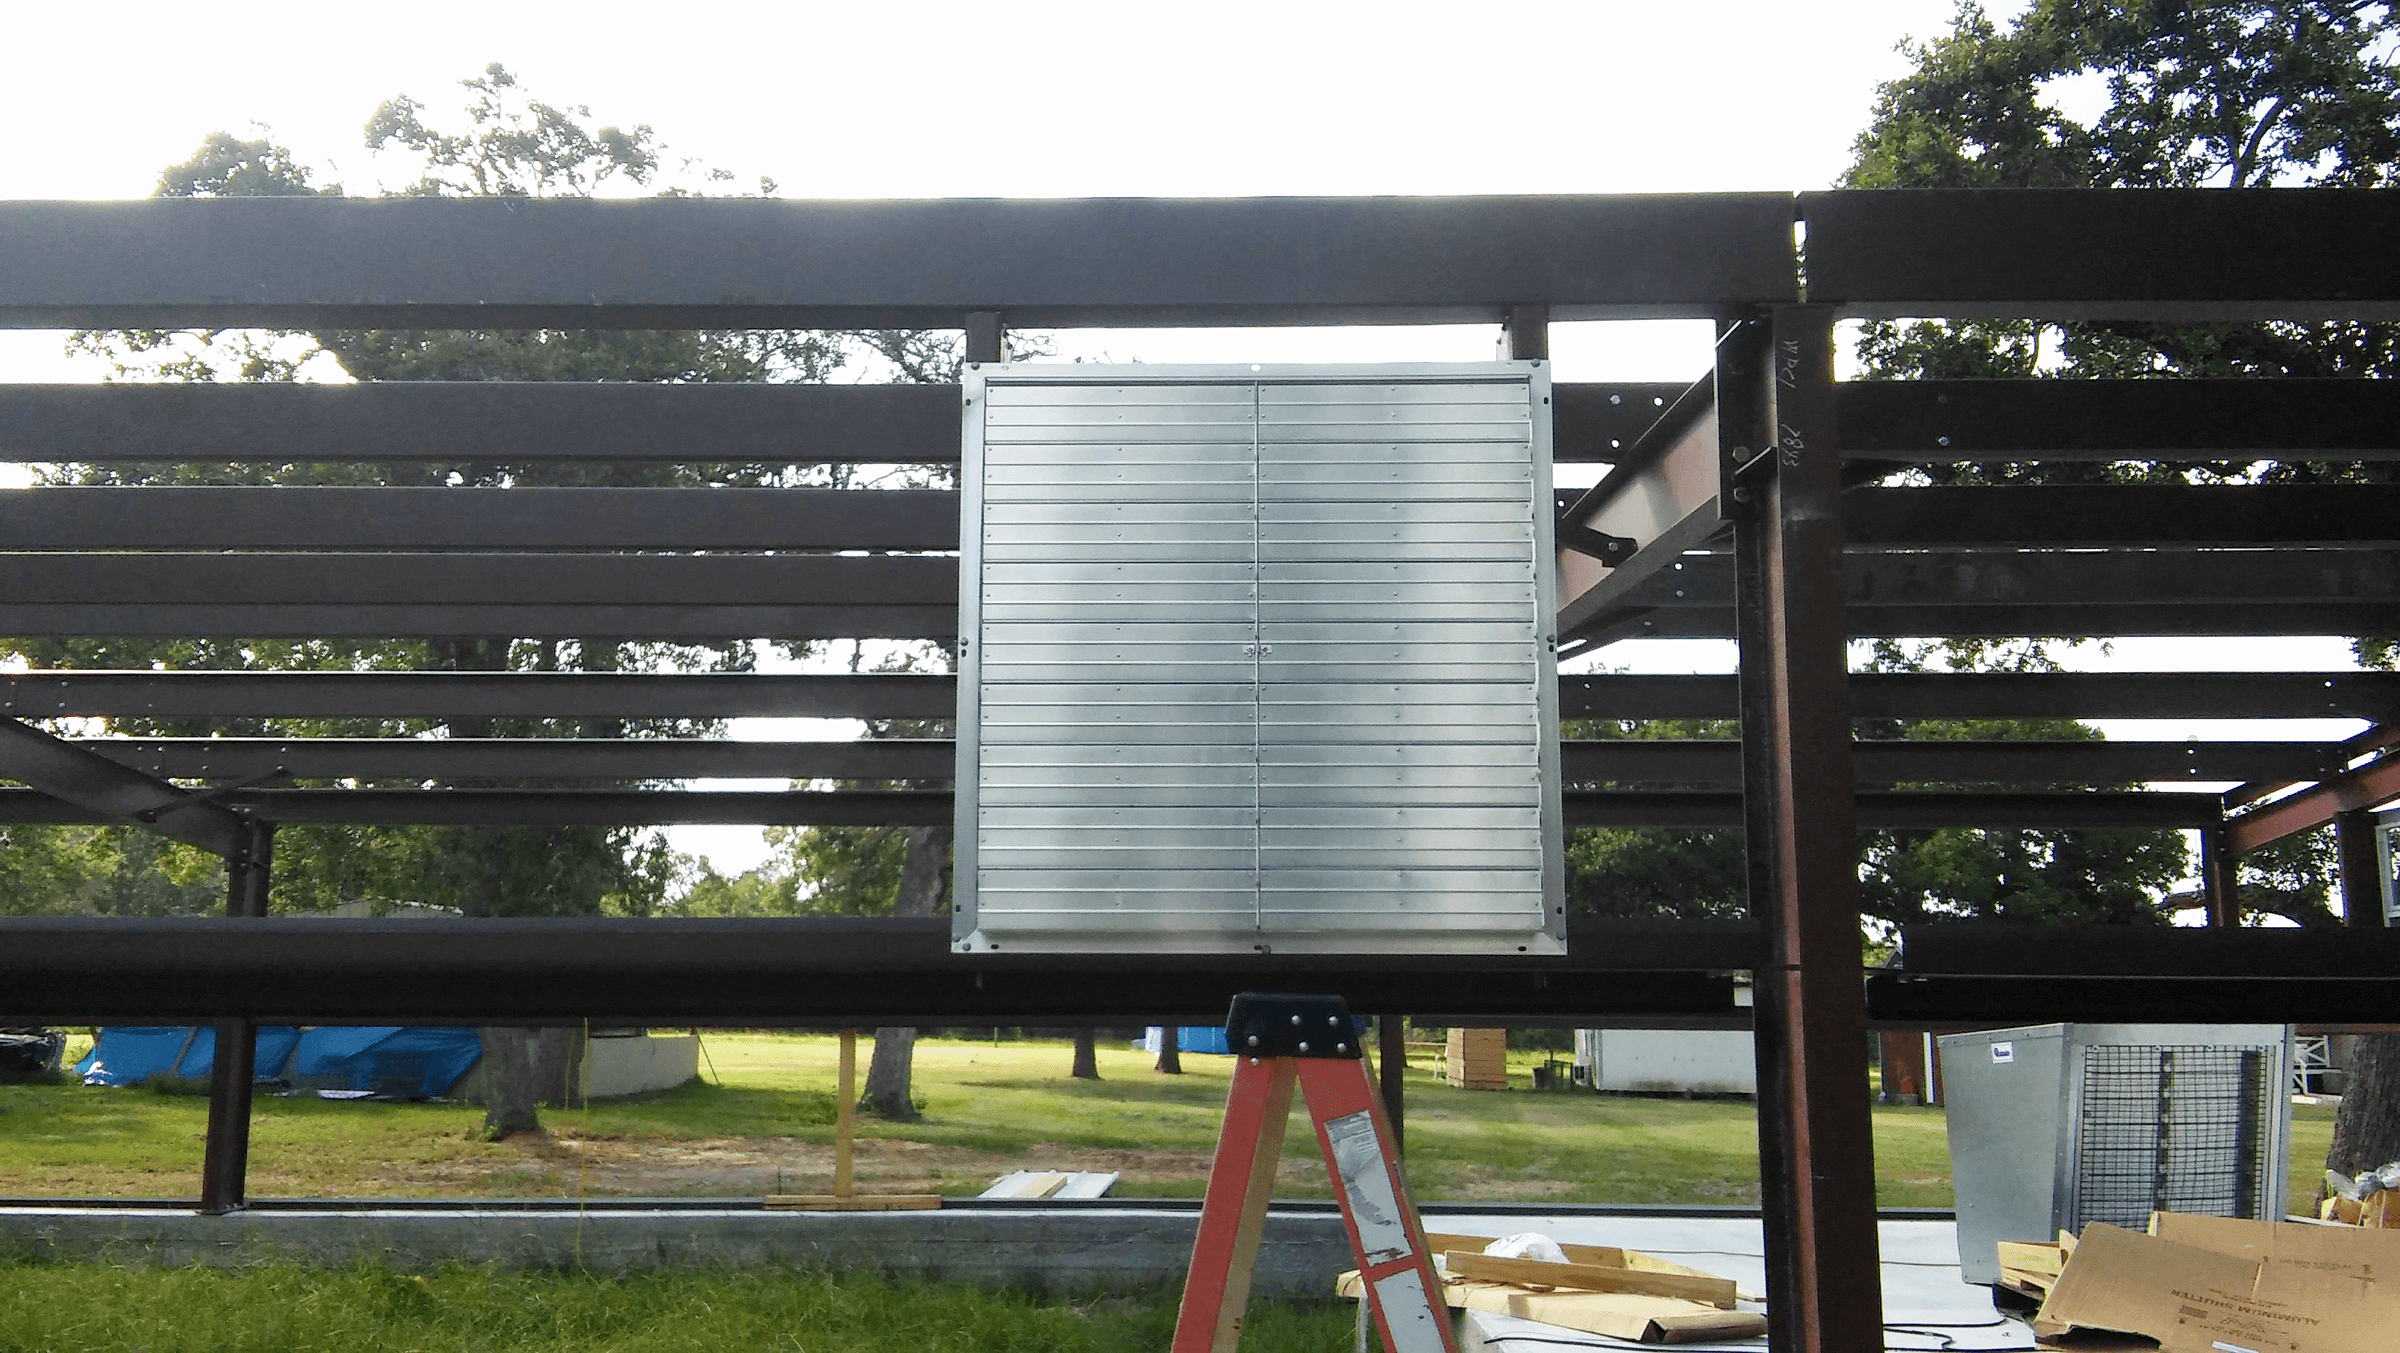 Installation of the exhaust fan to keep the rabbits cool.